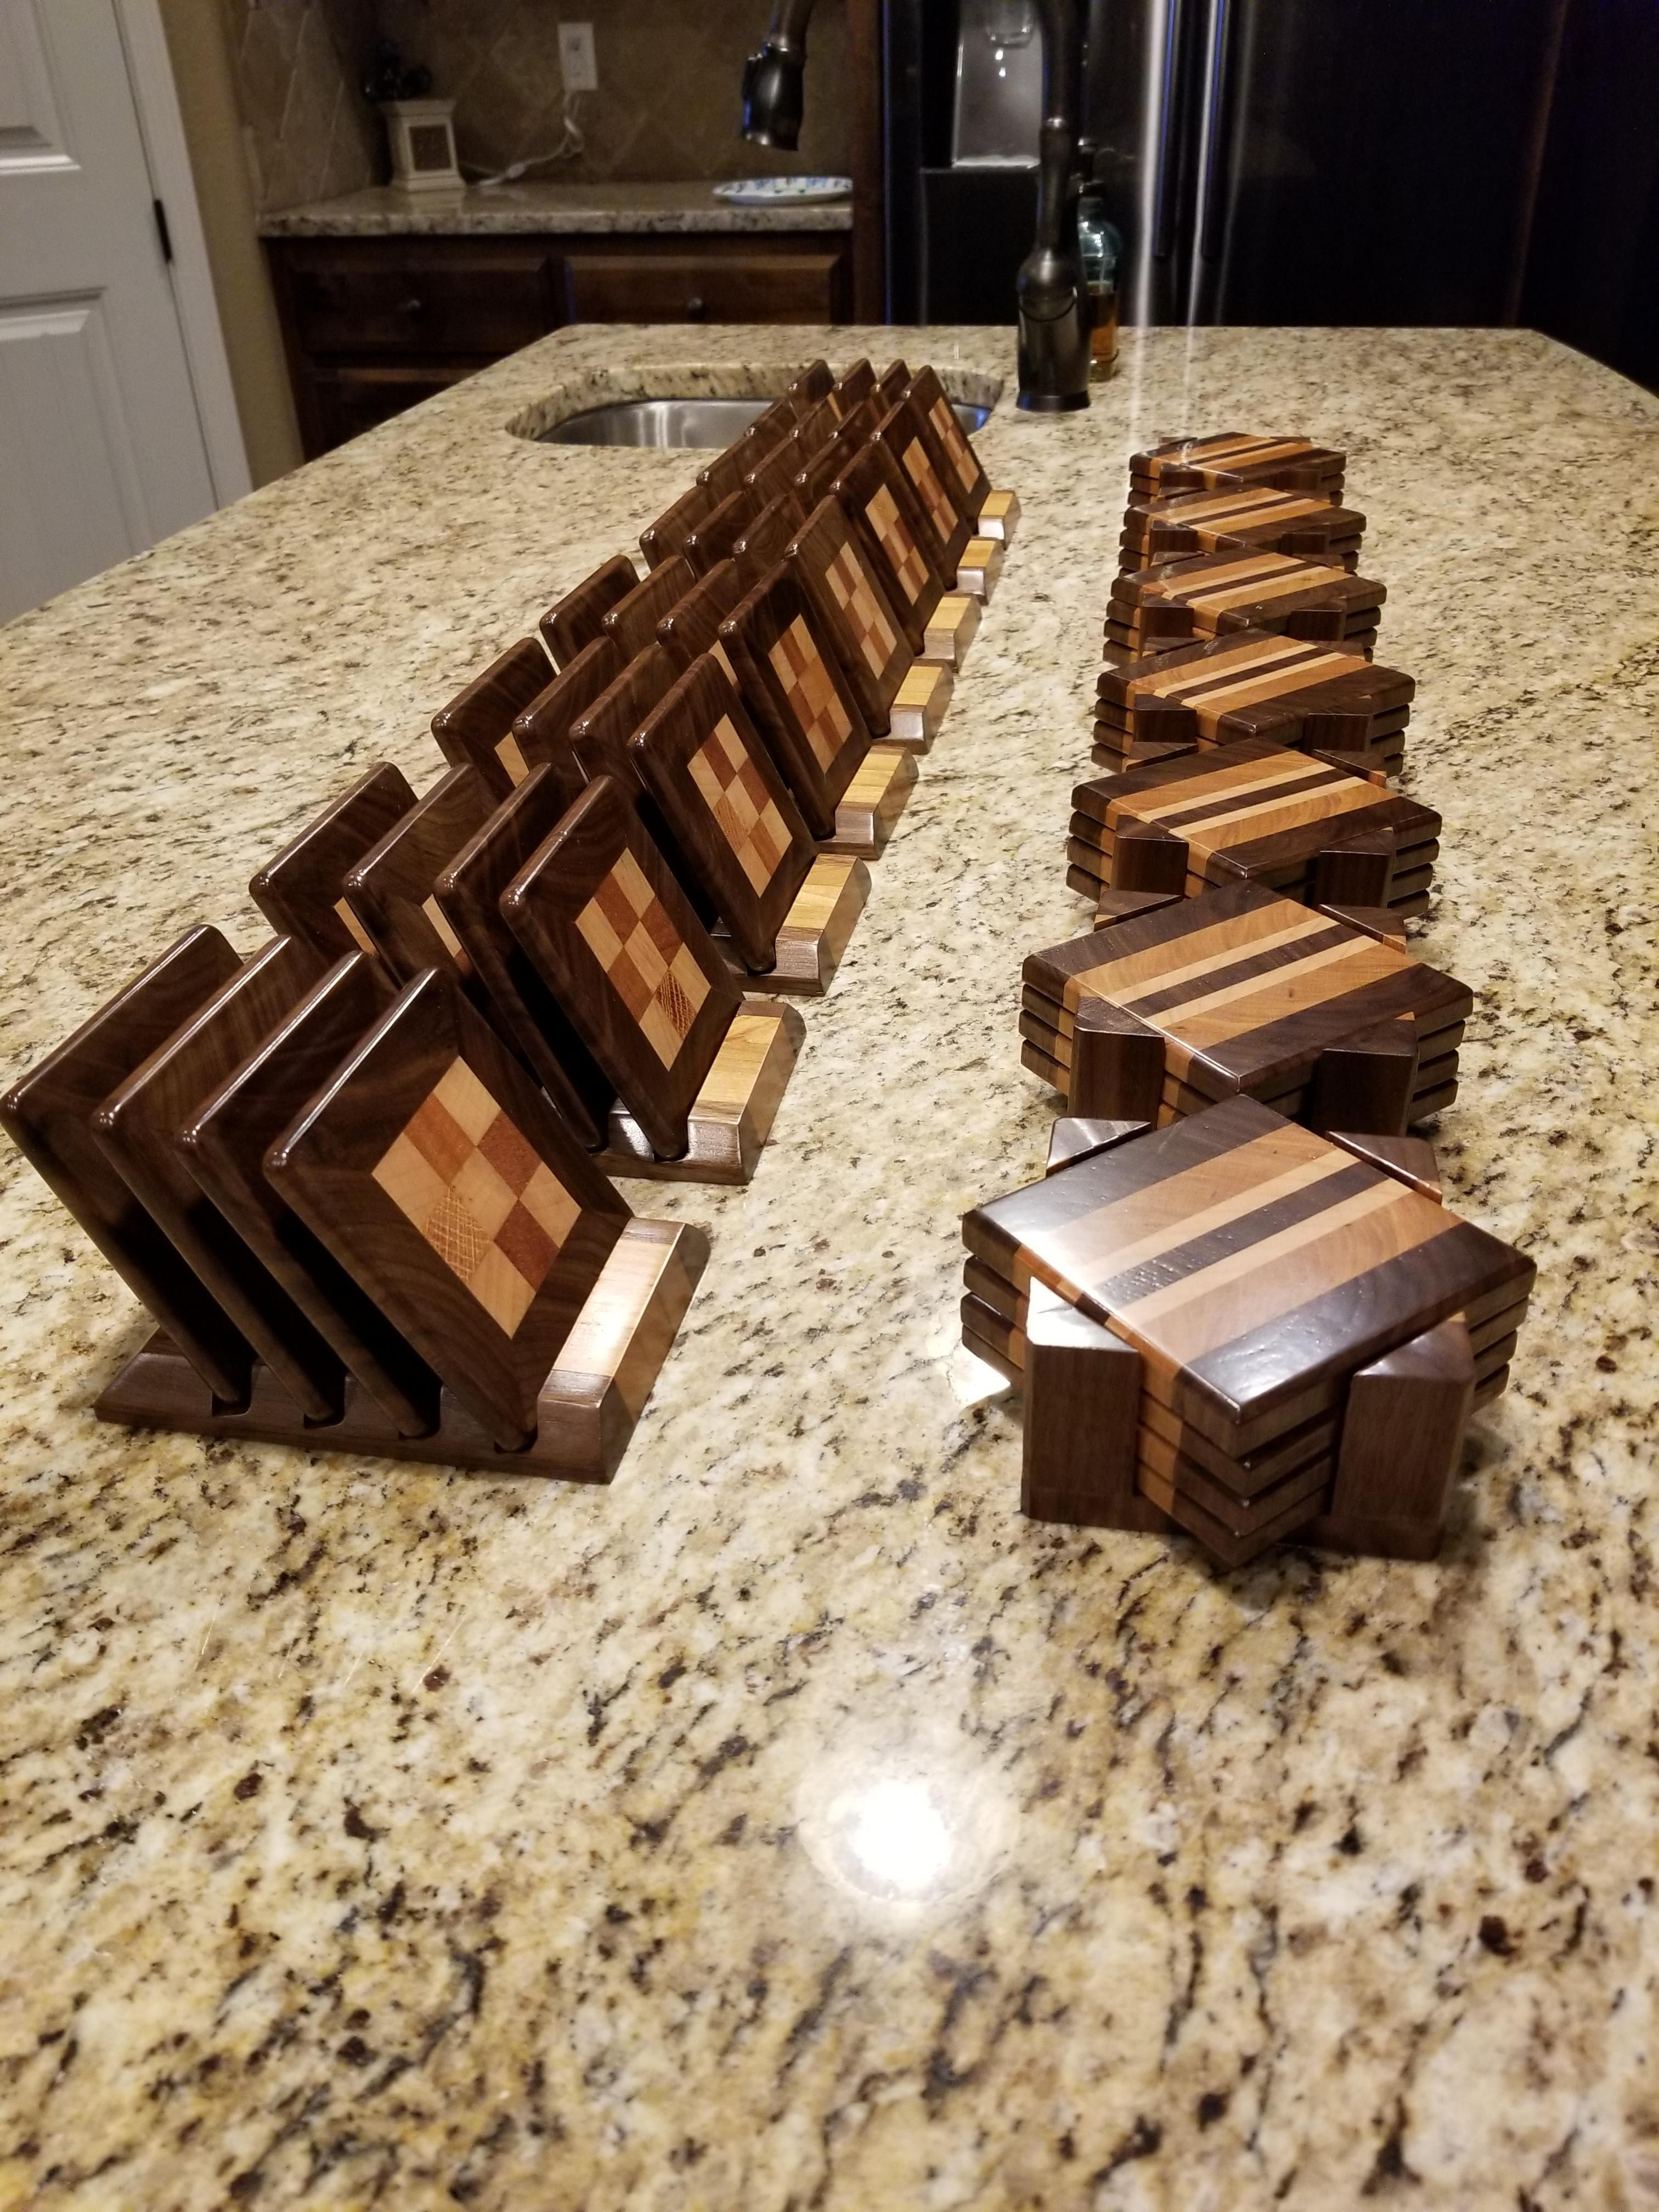 Pin by brandon o'connell on builds | Small wood projects ... on Cool Small Woodworking Projects  id=11565